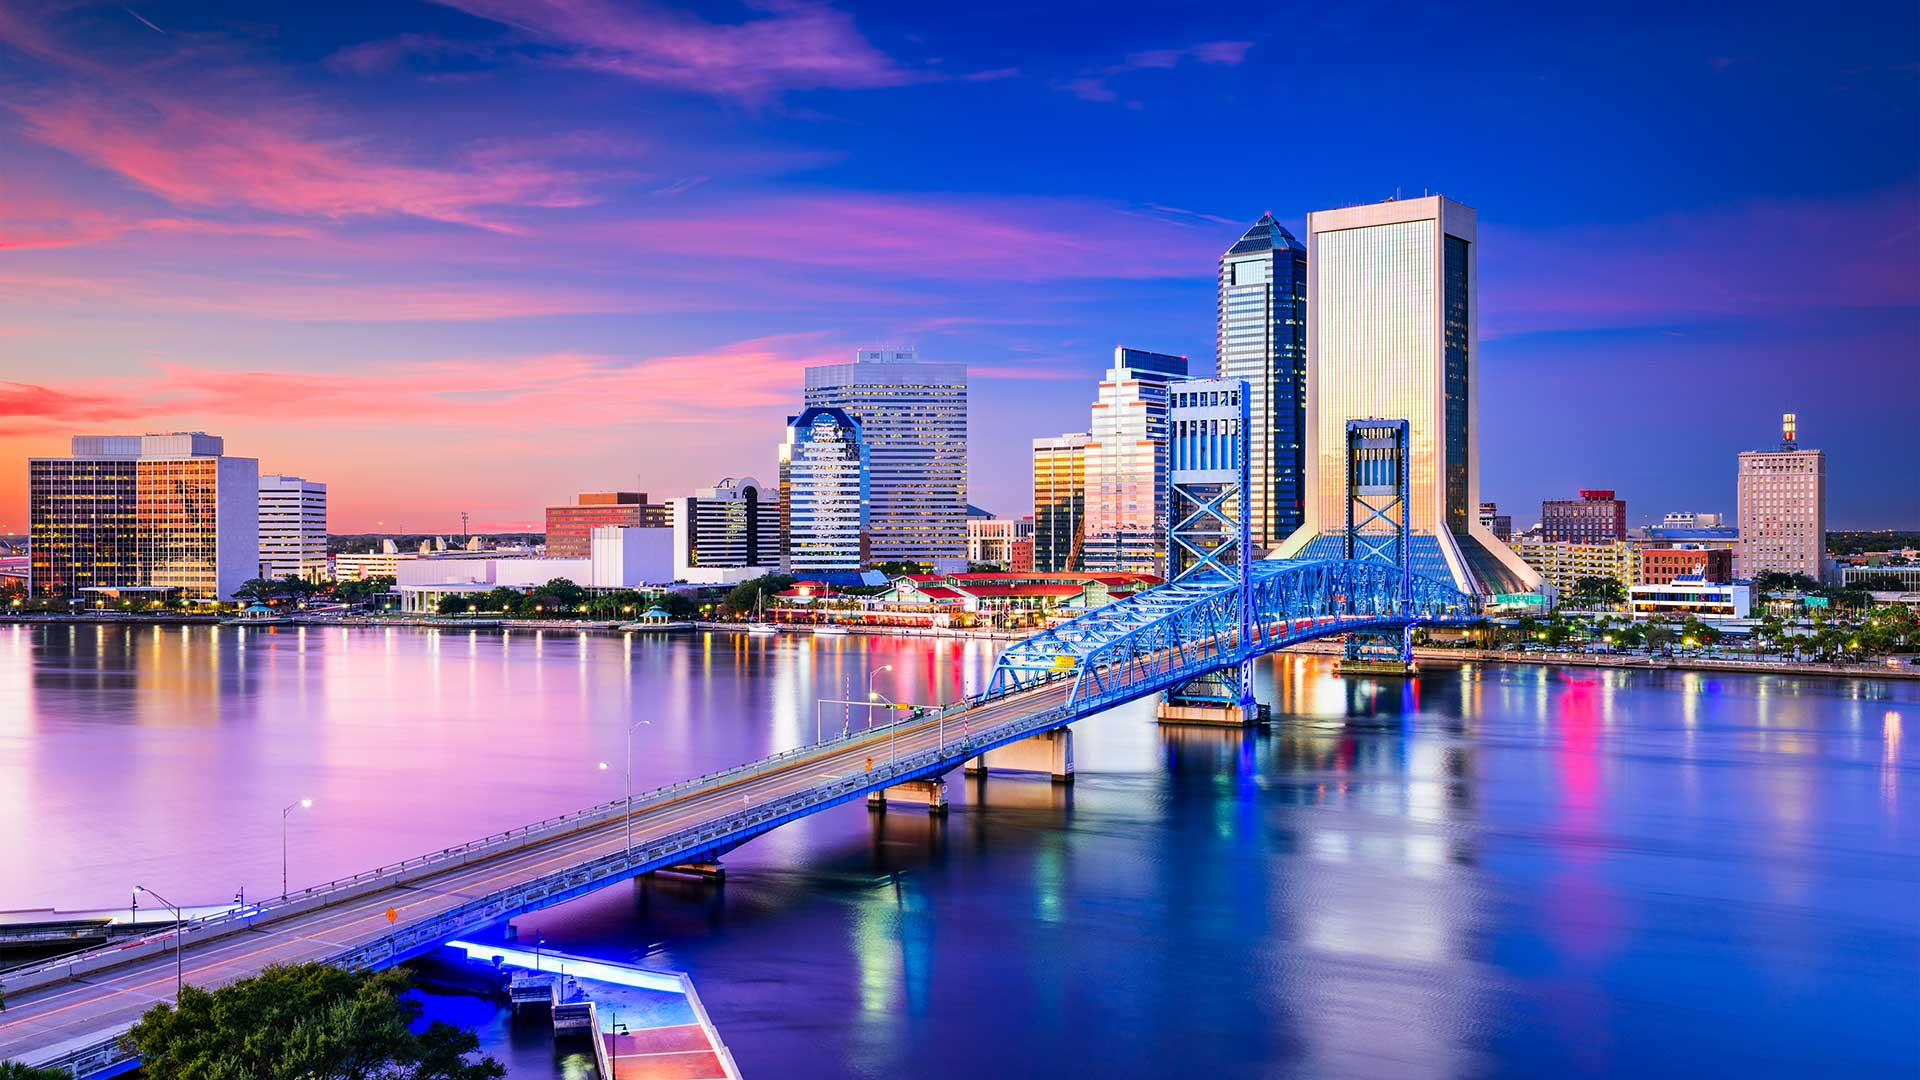 Panorama to illustrate dating in jacksonville